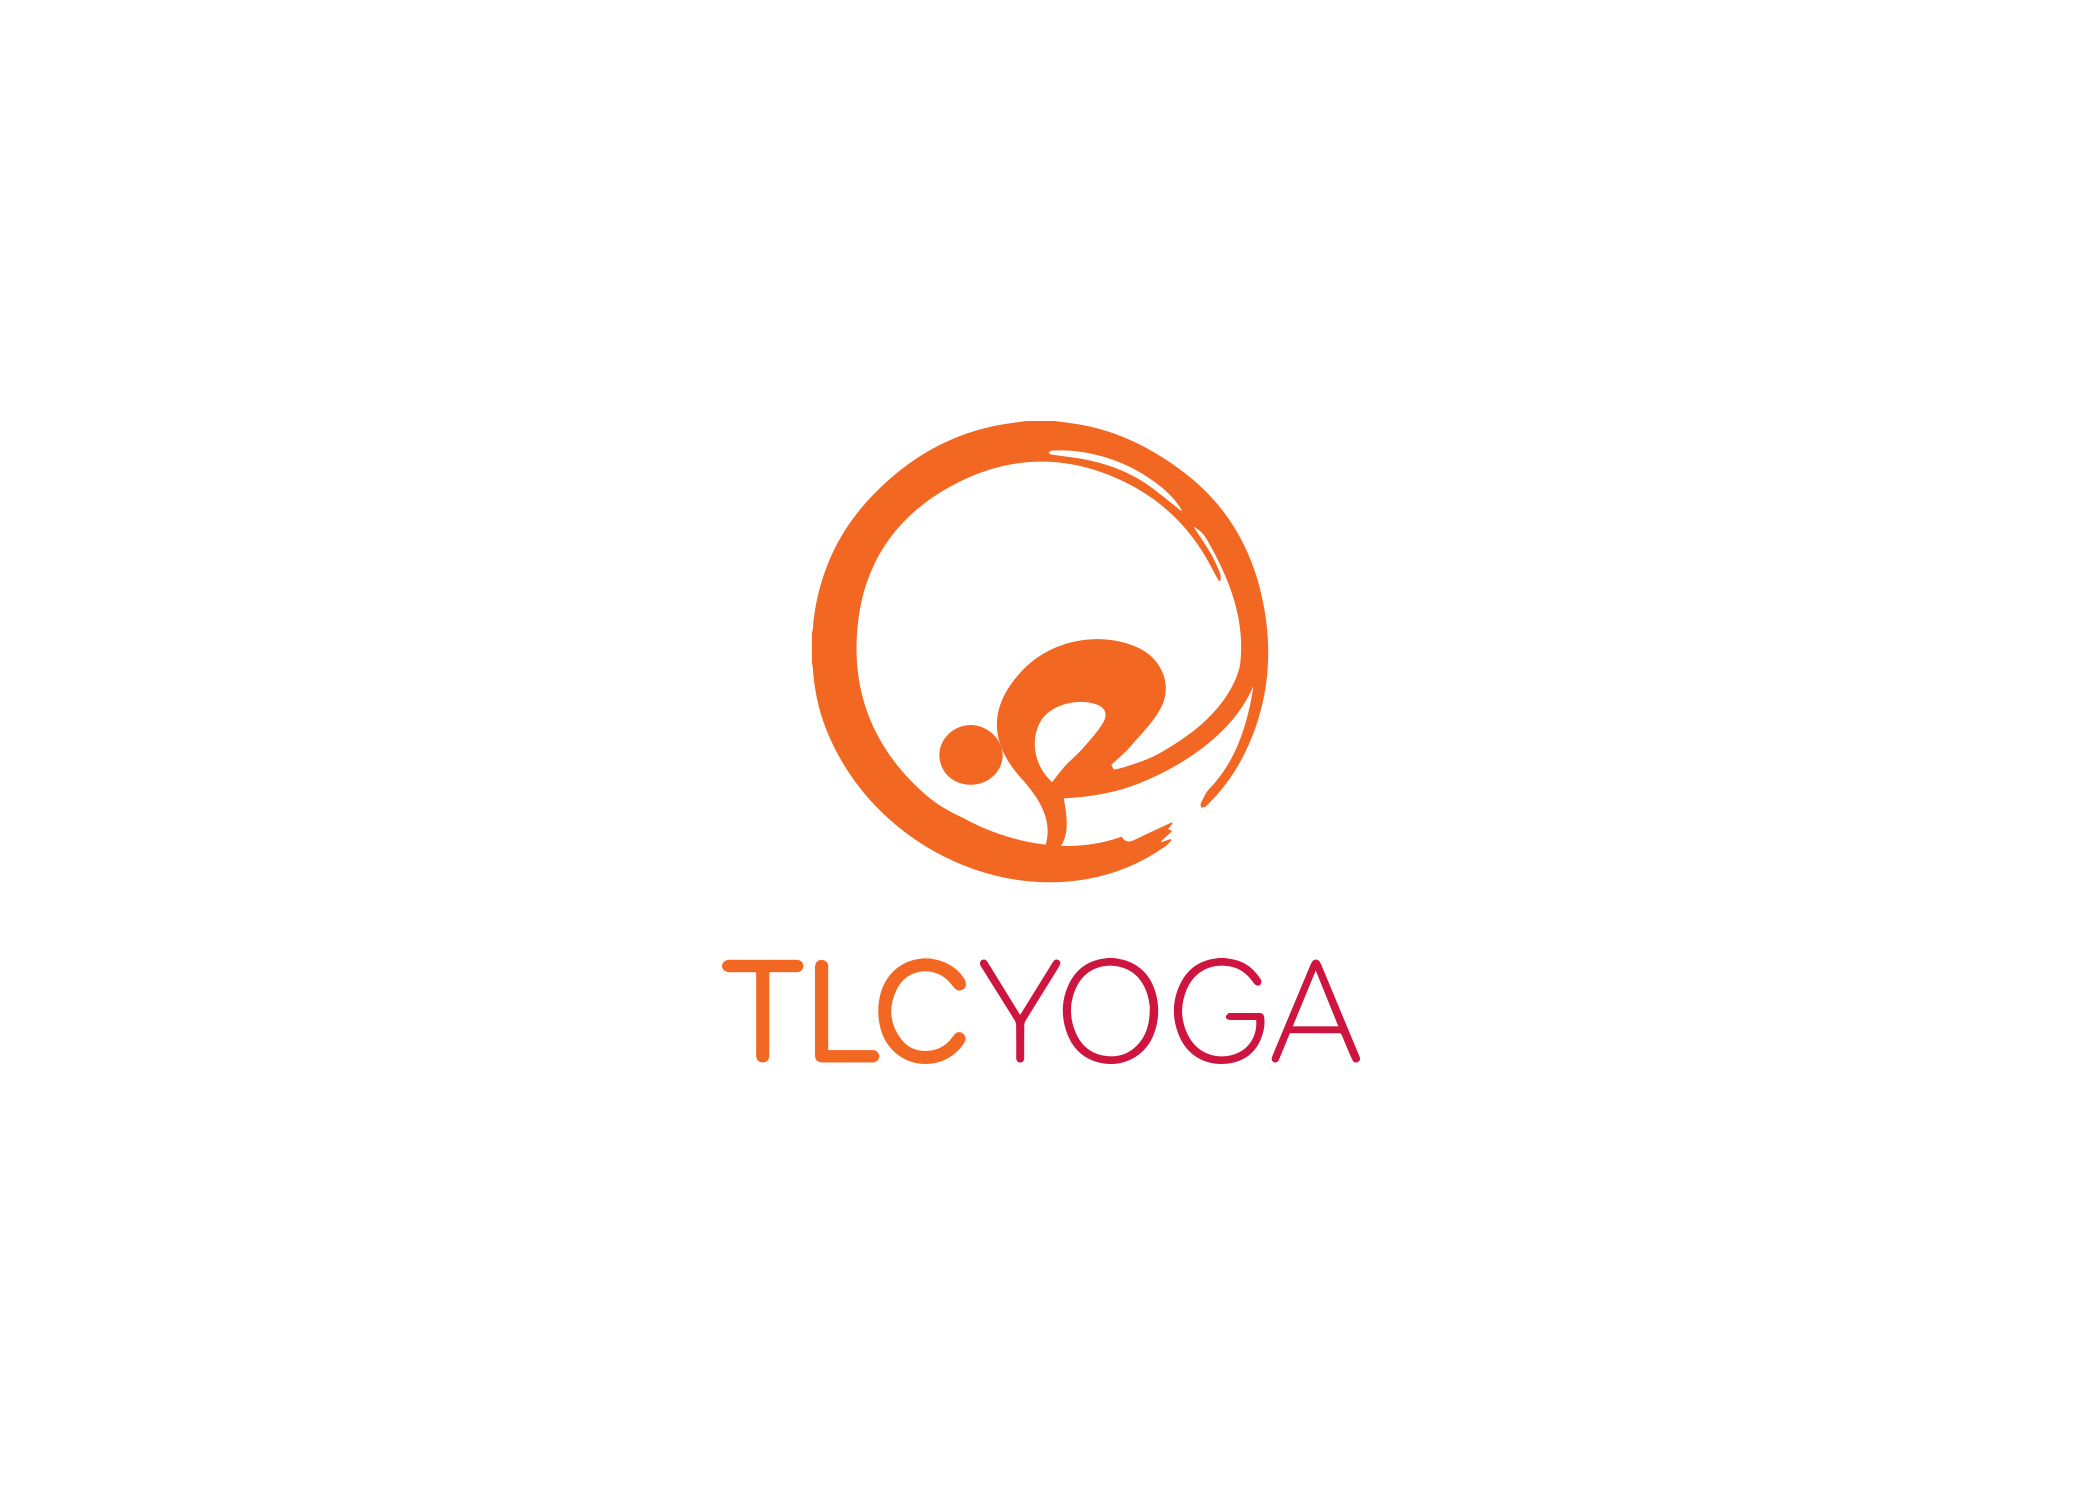 TLC Yoga logo in orange and pink depicting human form in the crow pose within a zen circle placed over the brand name.